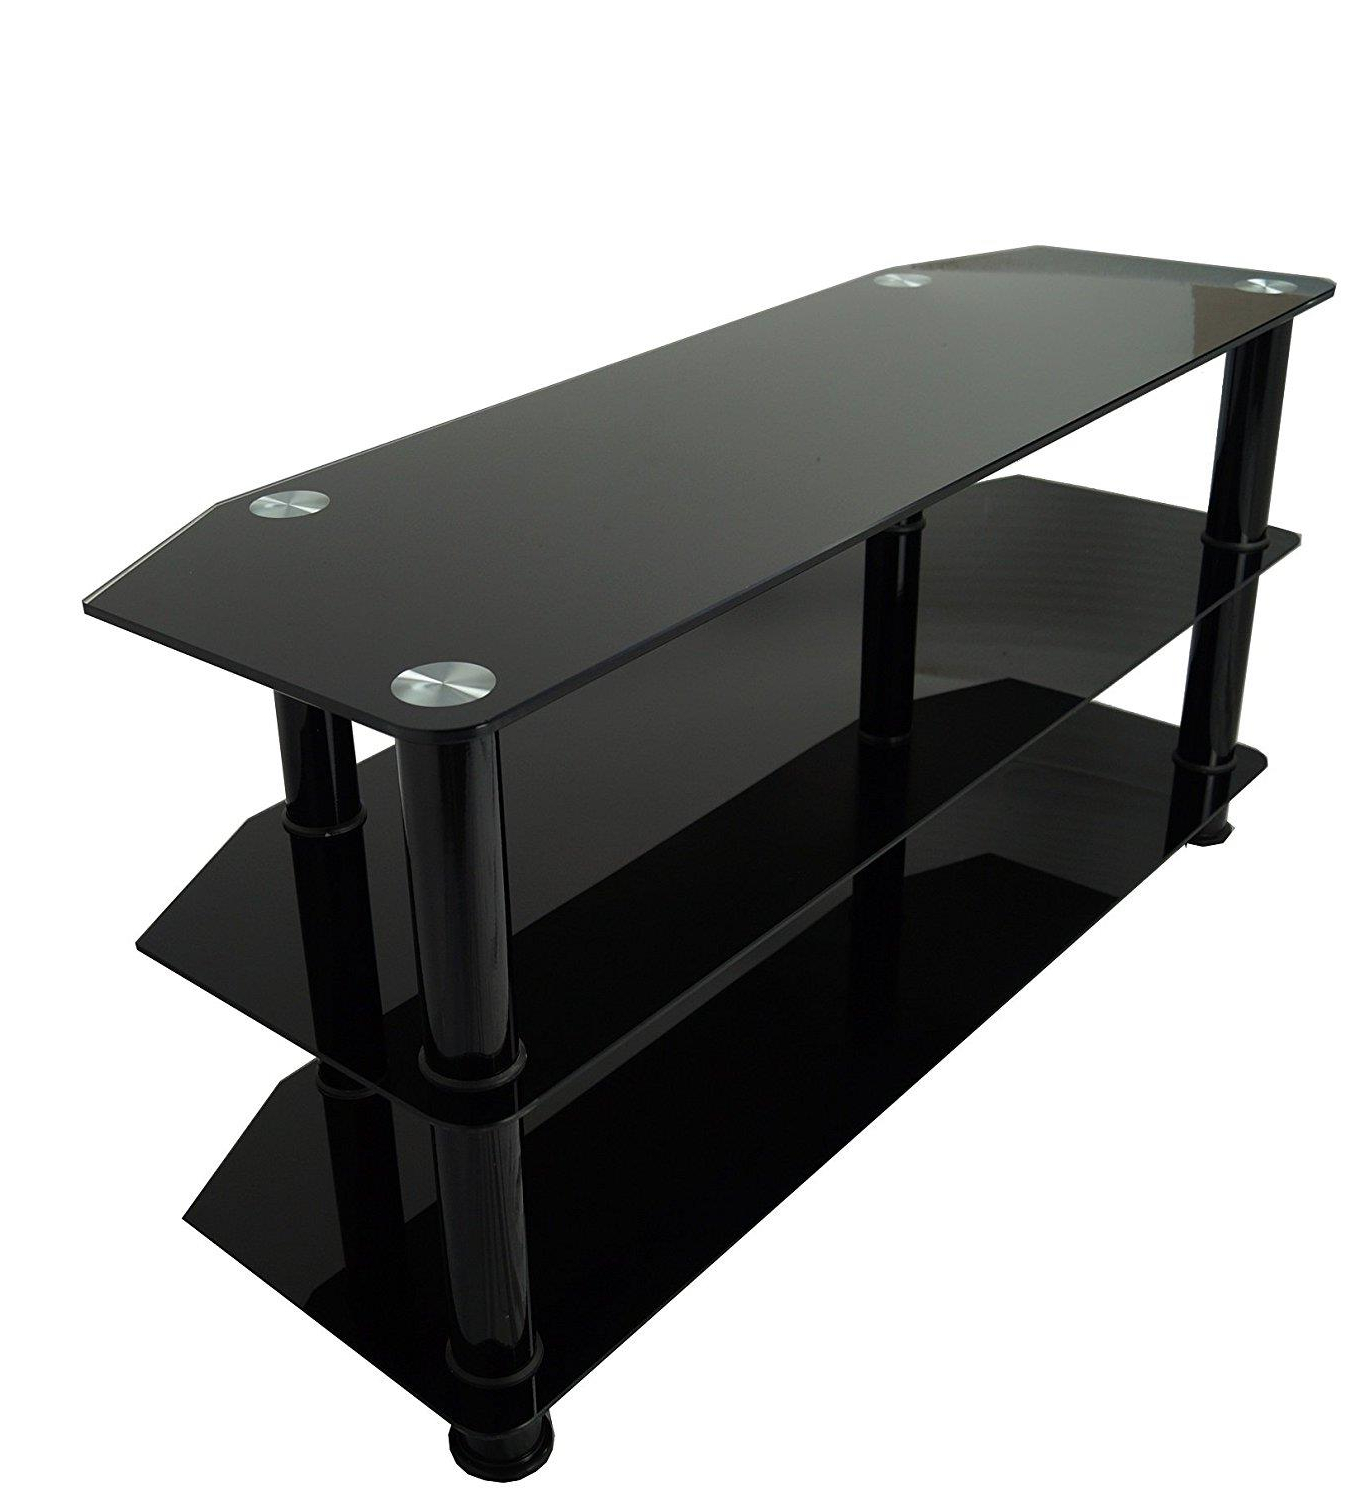 Most Popular Black Glass Tv Stand For 32 Inch Up To 60 Inch 3D Led Lcd & Plasma Intended For Black Glass Tv Stands (View 15 of 20)